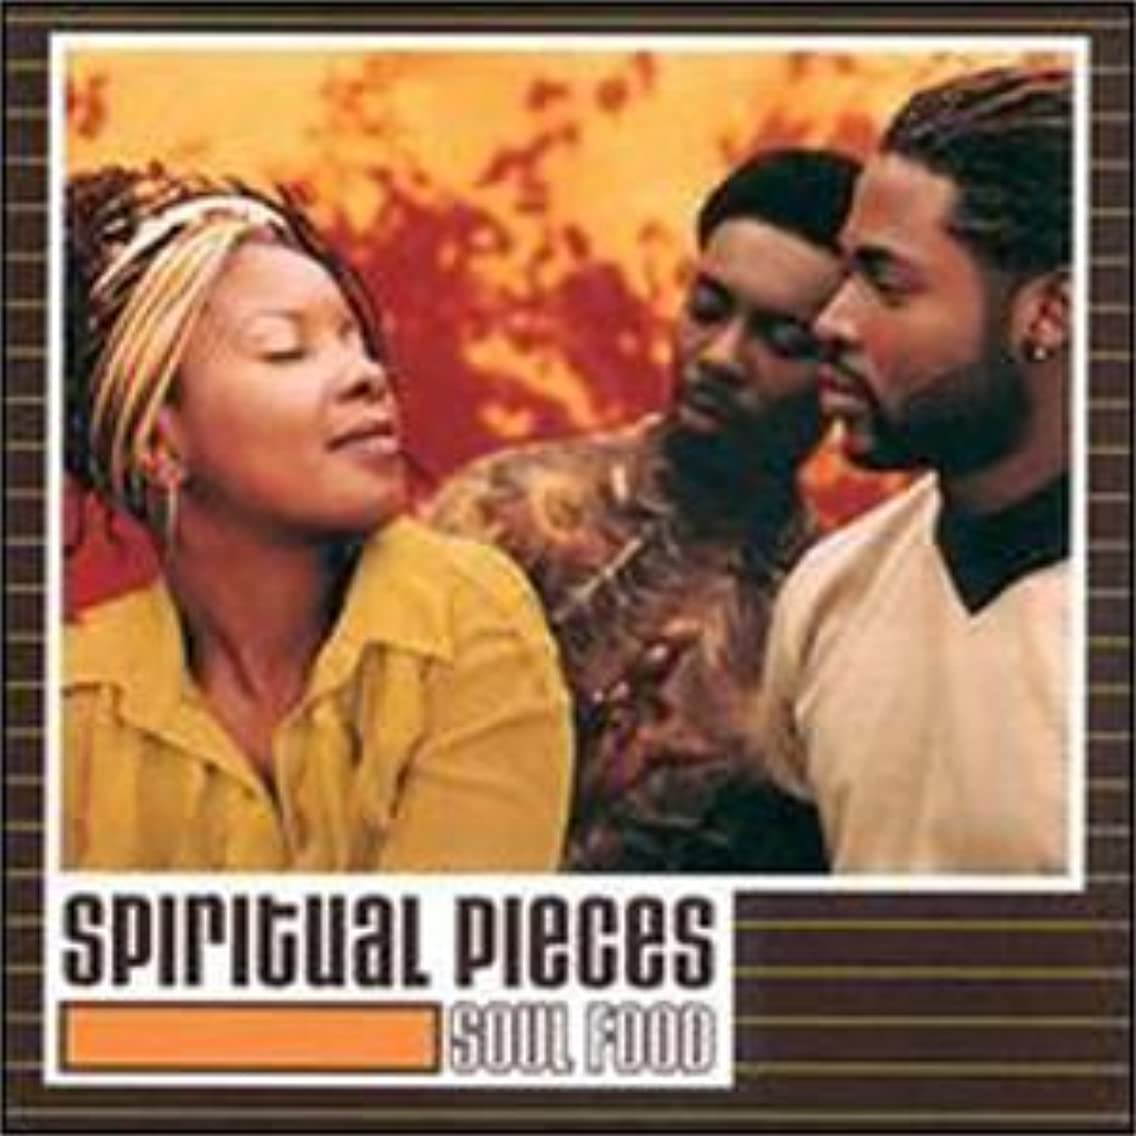 Soul Food by Spiritual Pieces